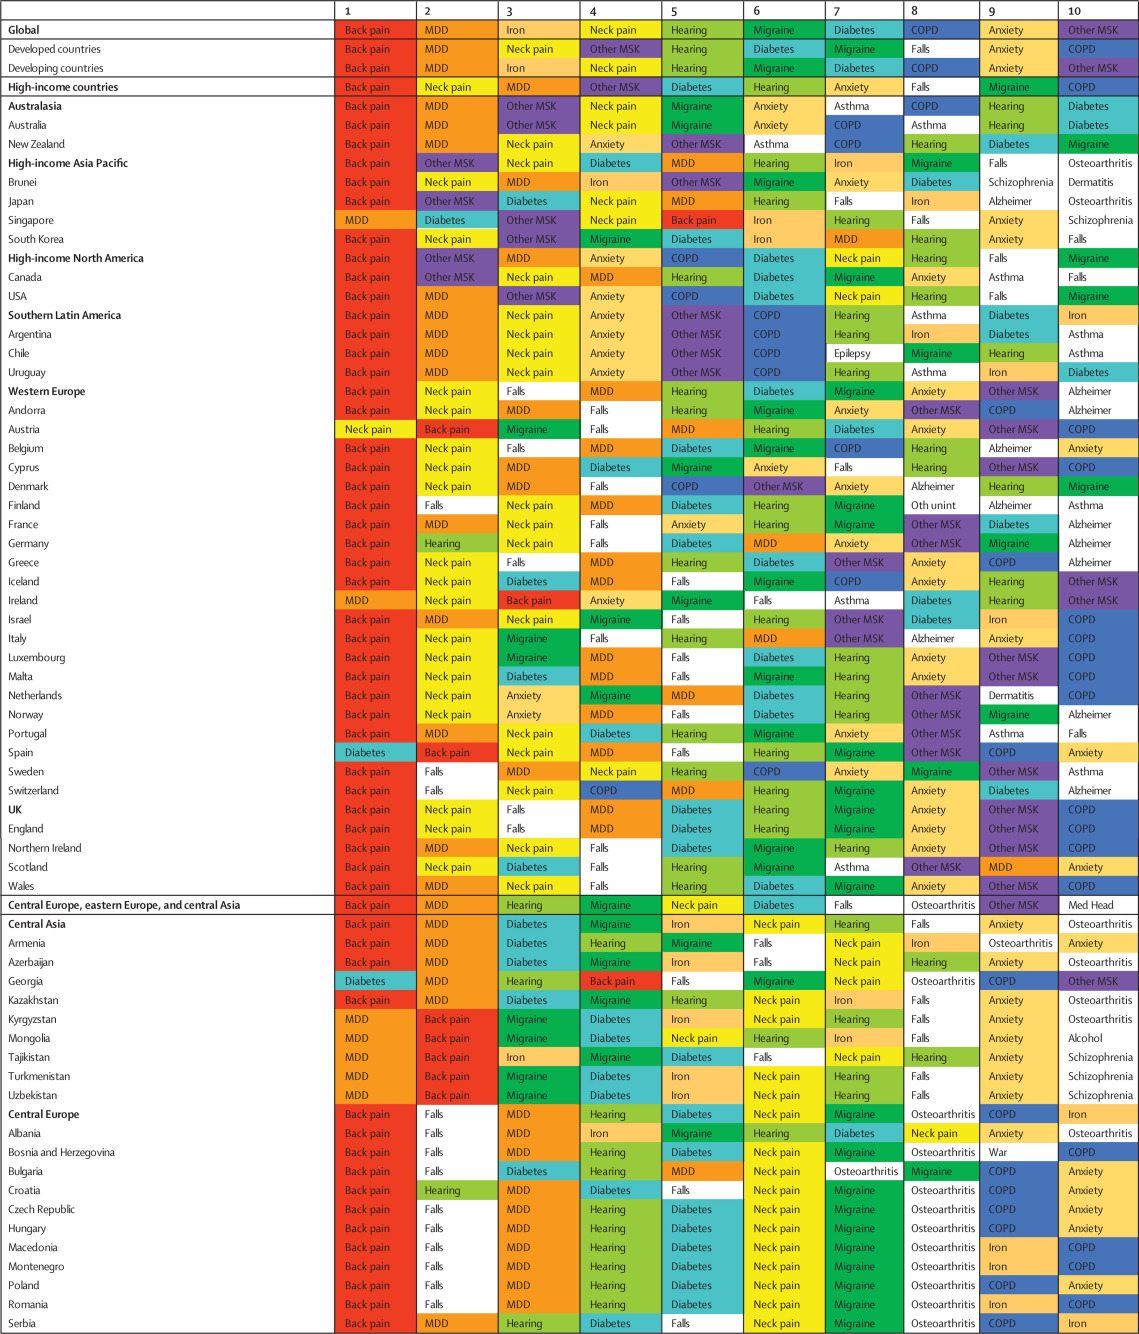 Global Regional And National Incidence Prevalence Years I Cinema Ihd 901 Wiring Diagram Download Full Size Image